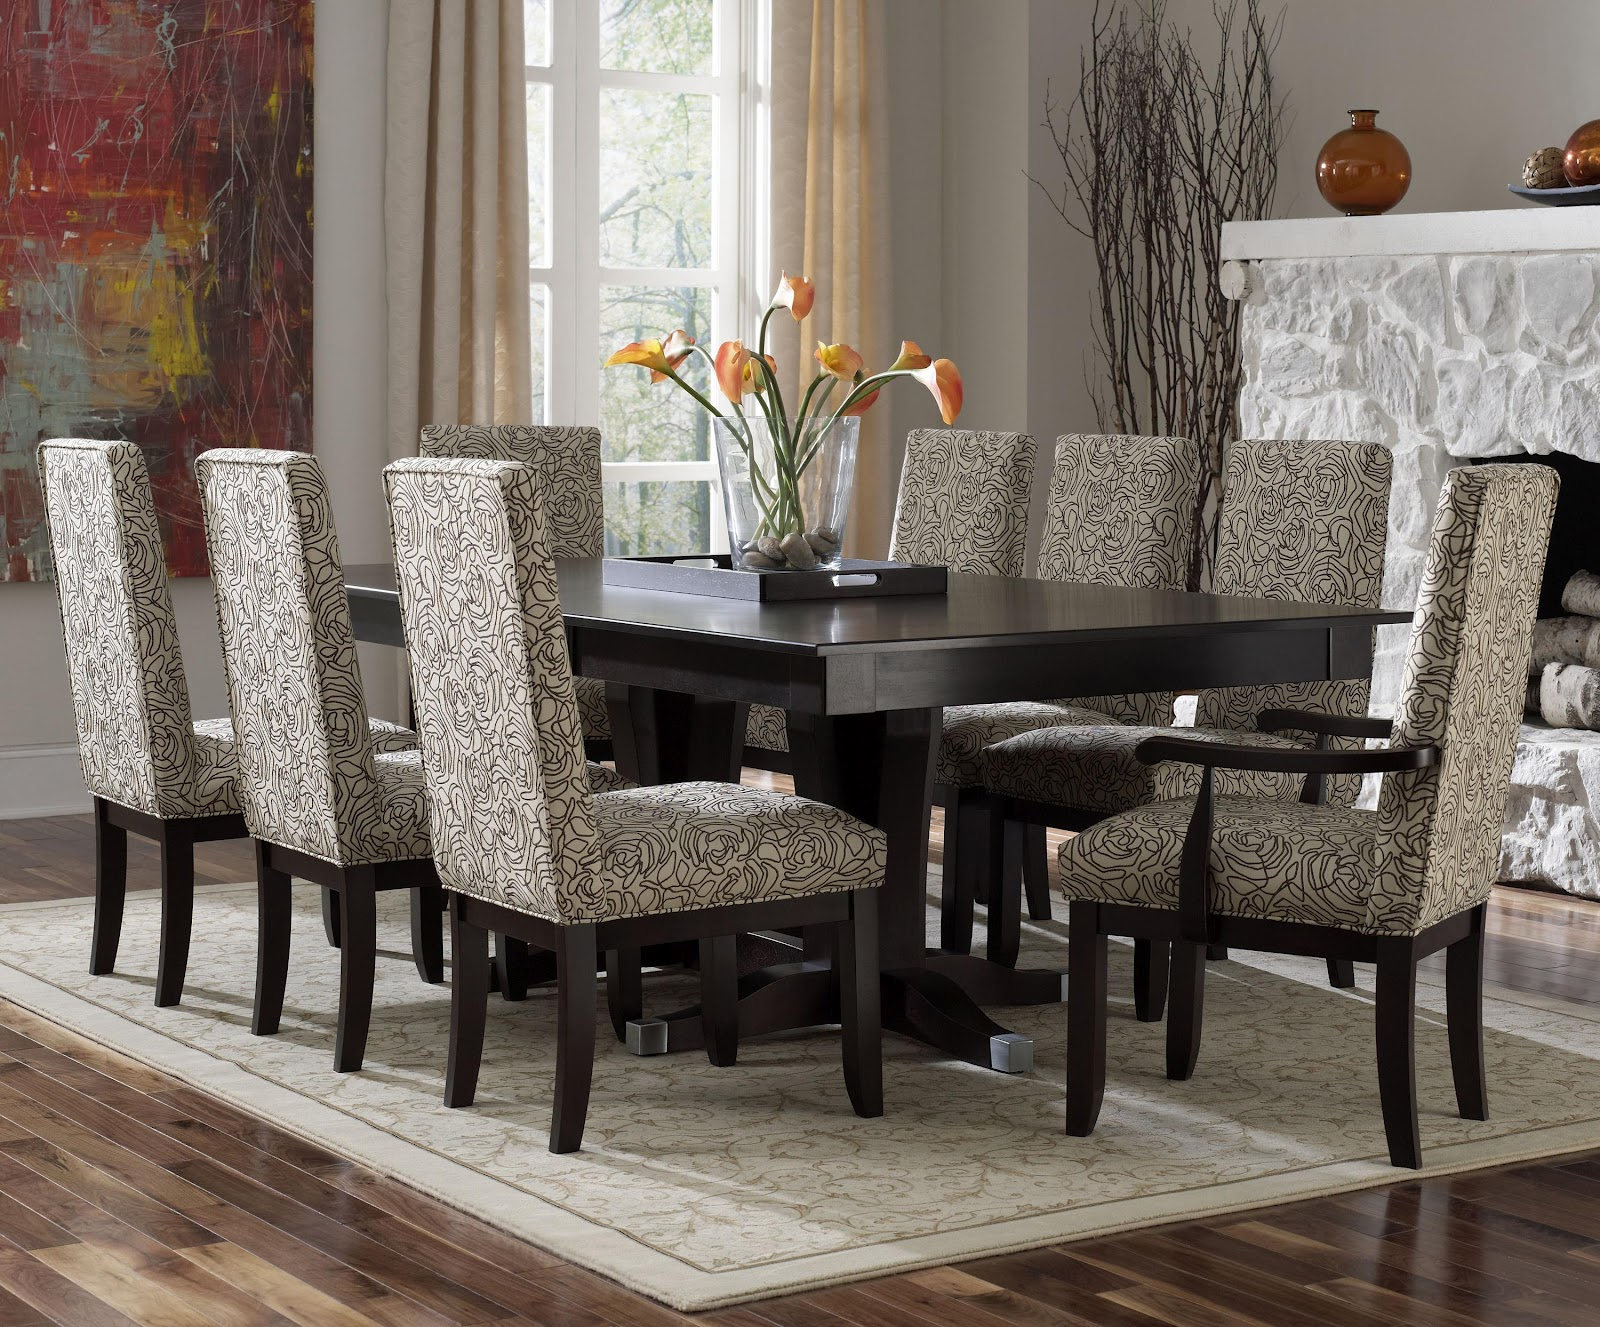 Canadel Furniture Long Island New York NY